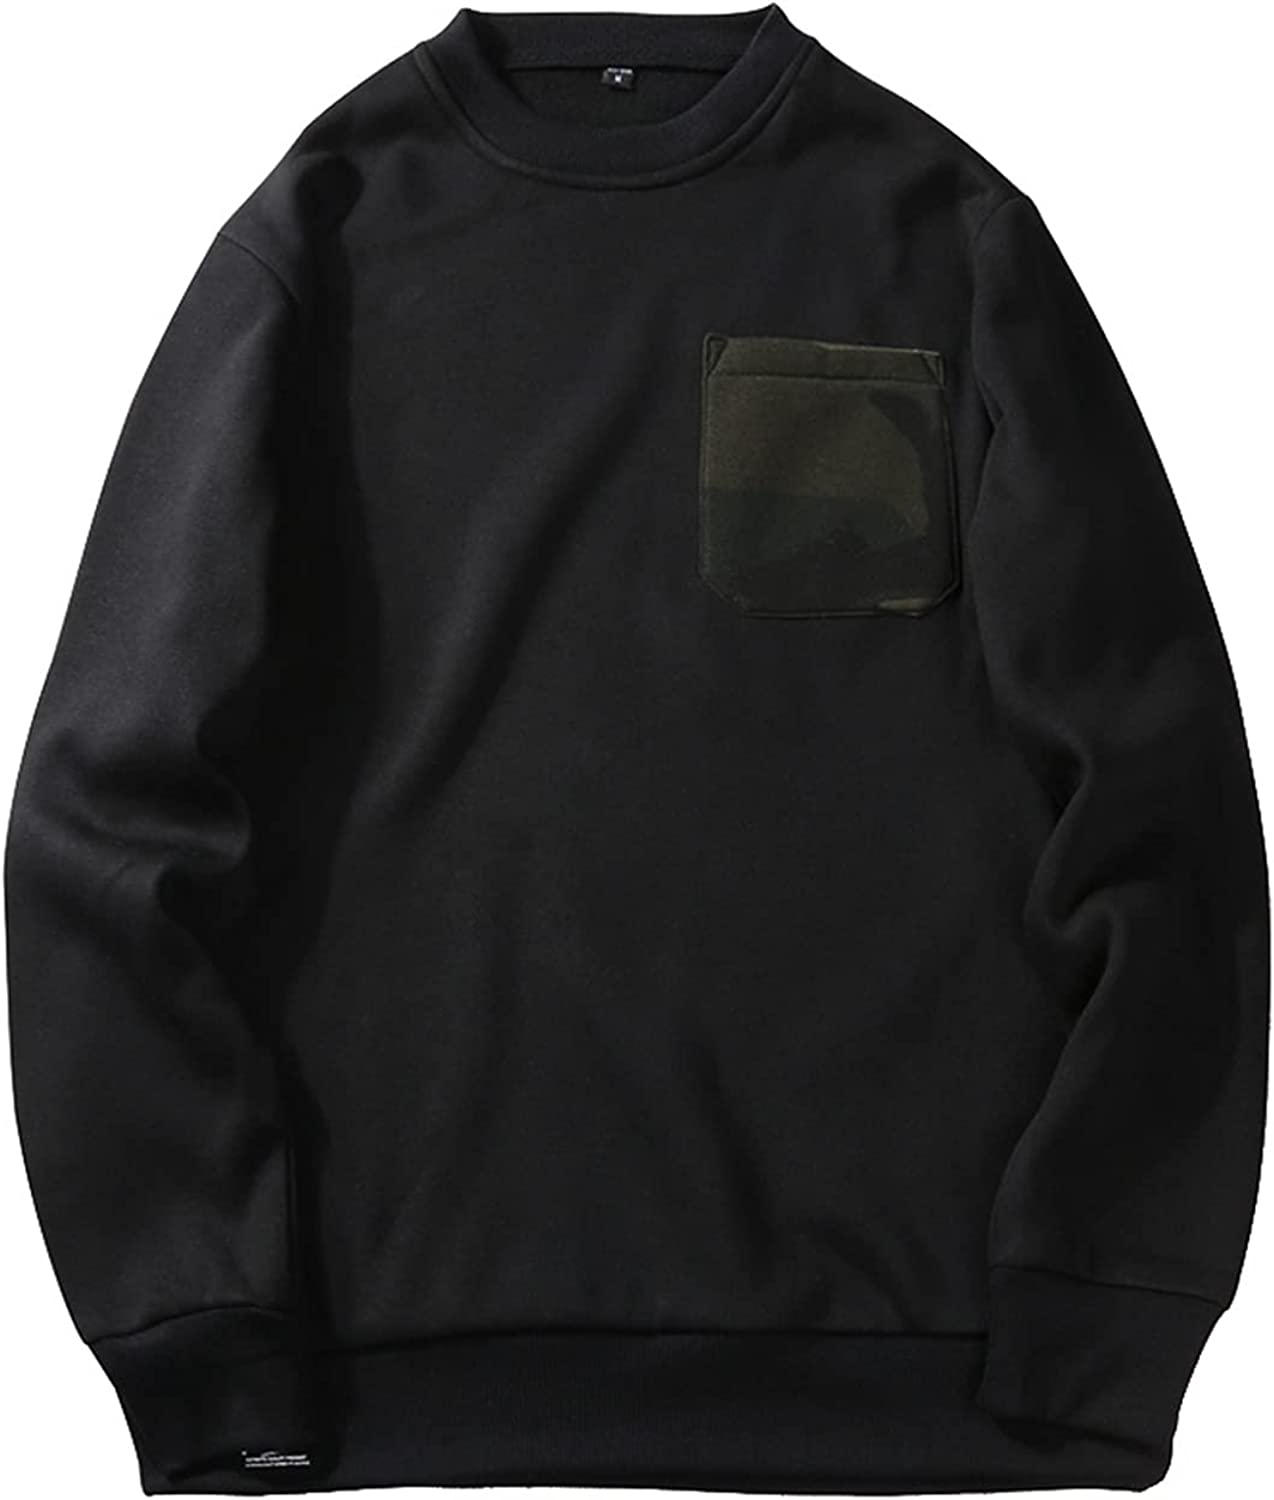 Men's Crewneck Pocket Sweatshirt,Warm Pullover with Camouflage Pockets,Dress Casual Loosely